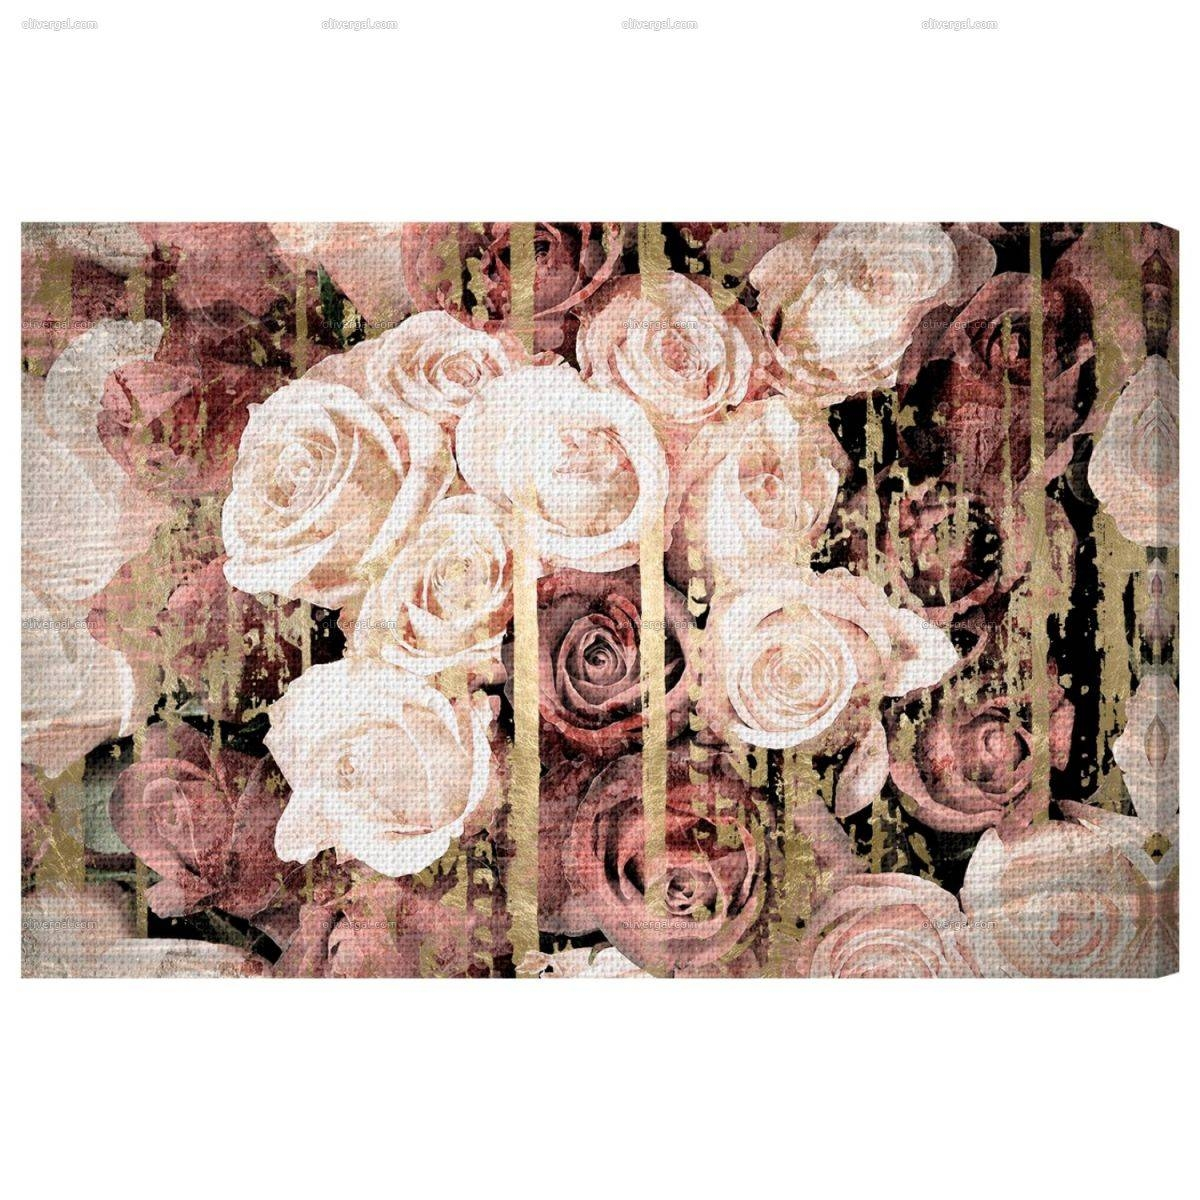 Shabby Chic Romance — Oliver Gal Throughout Most Recently Released Shabby Chic Canvas Wall Art (View 16 of 25)